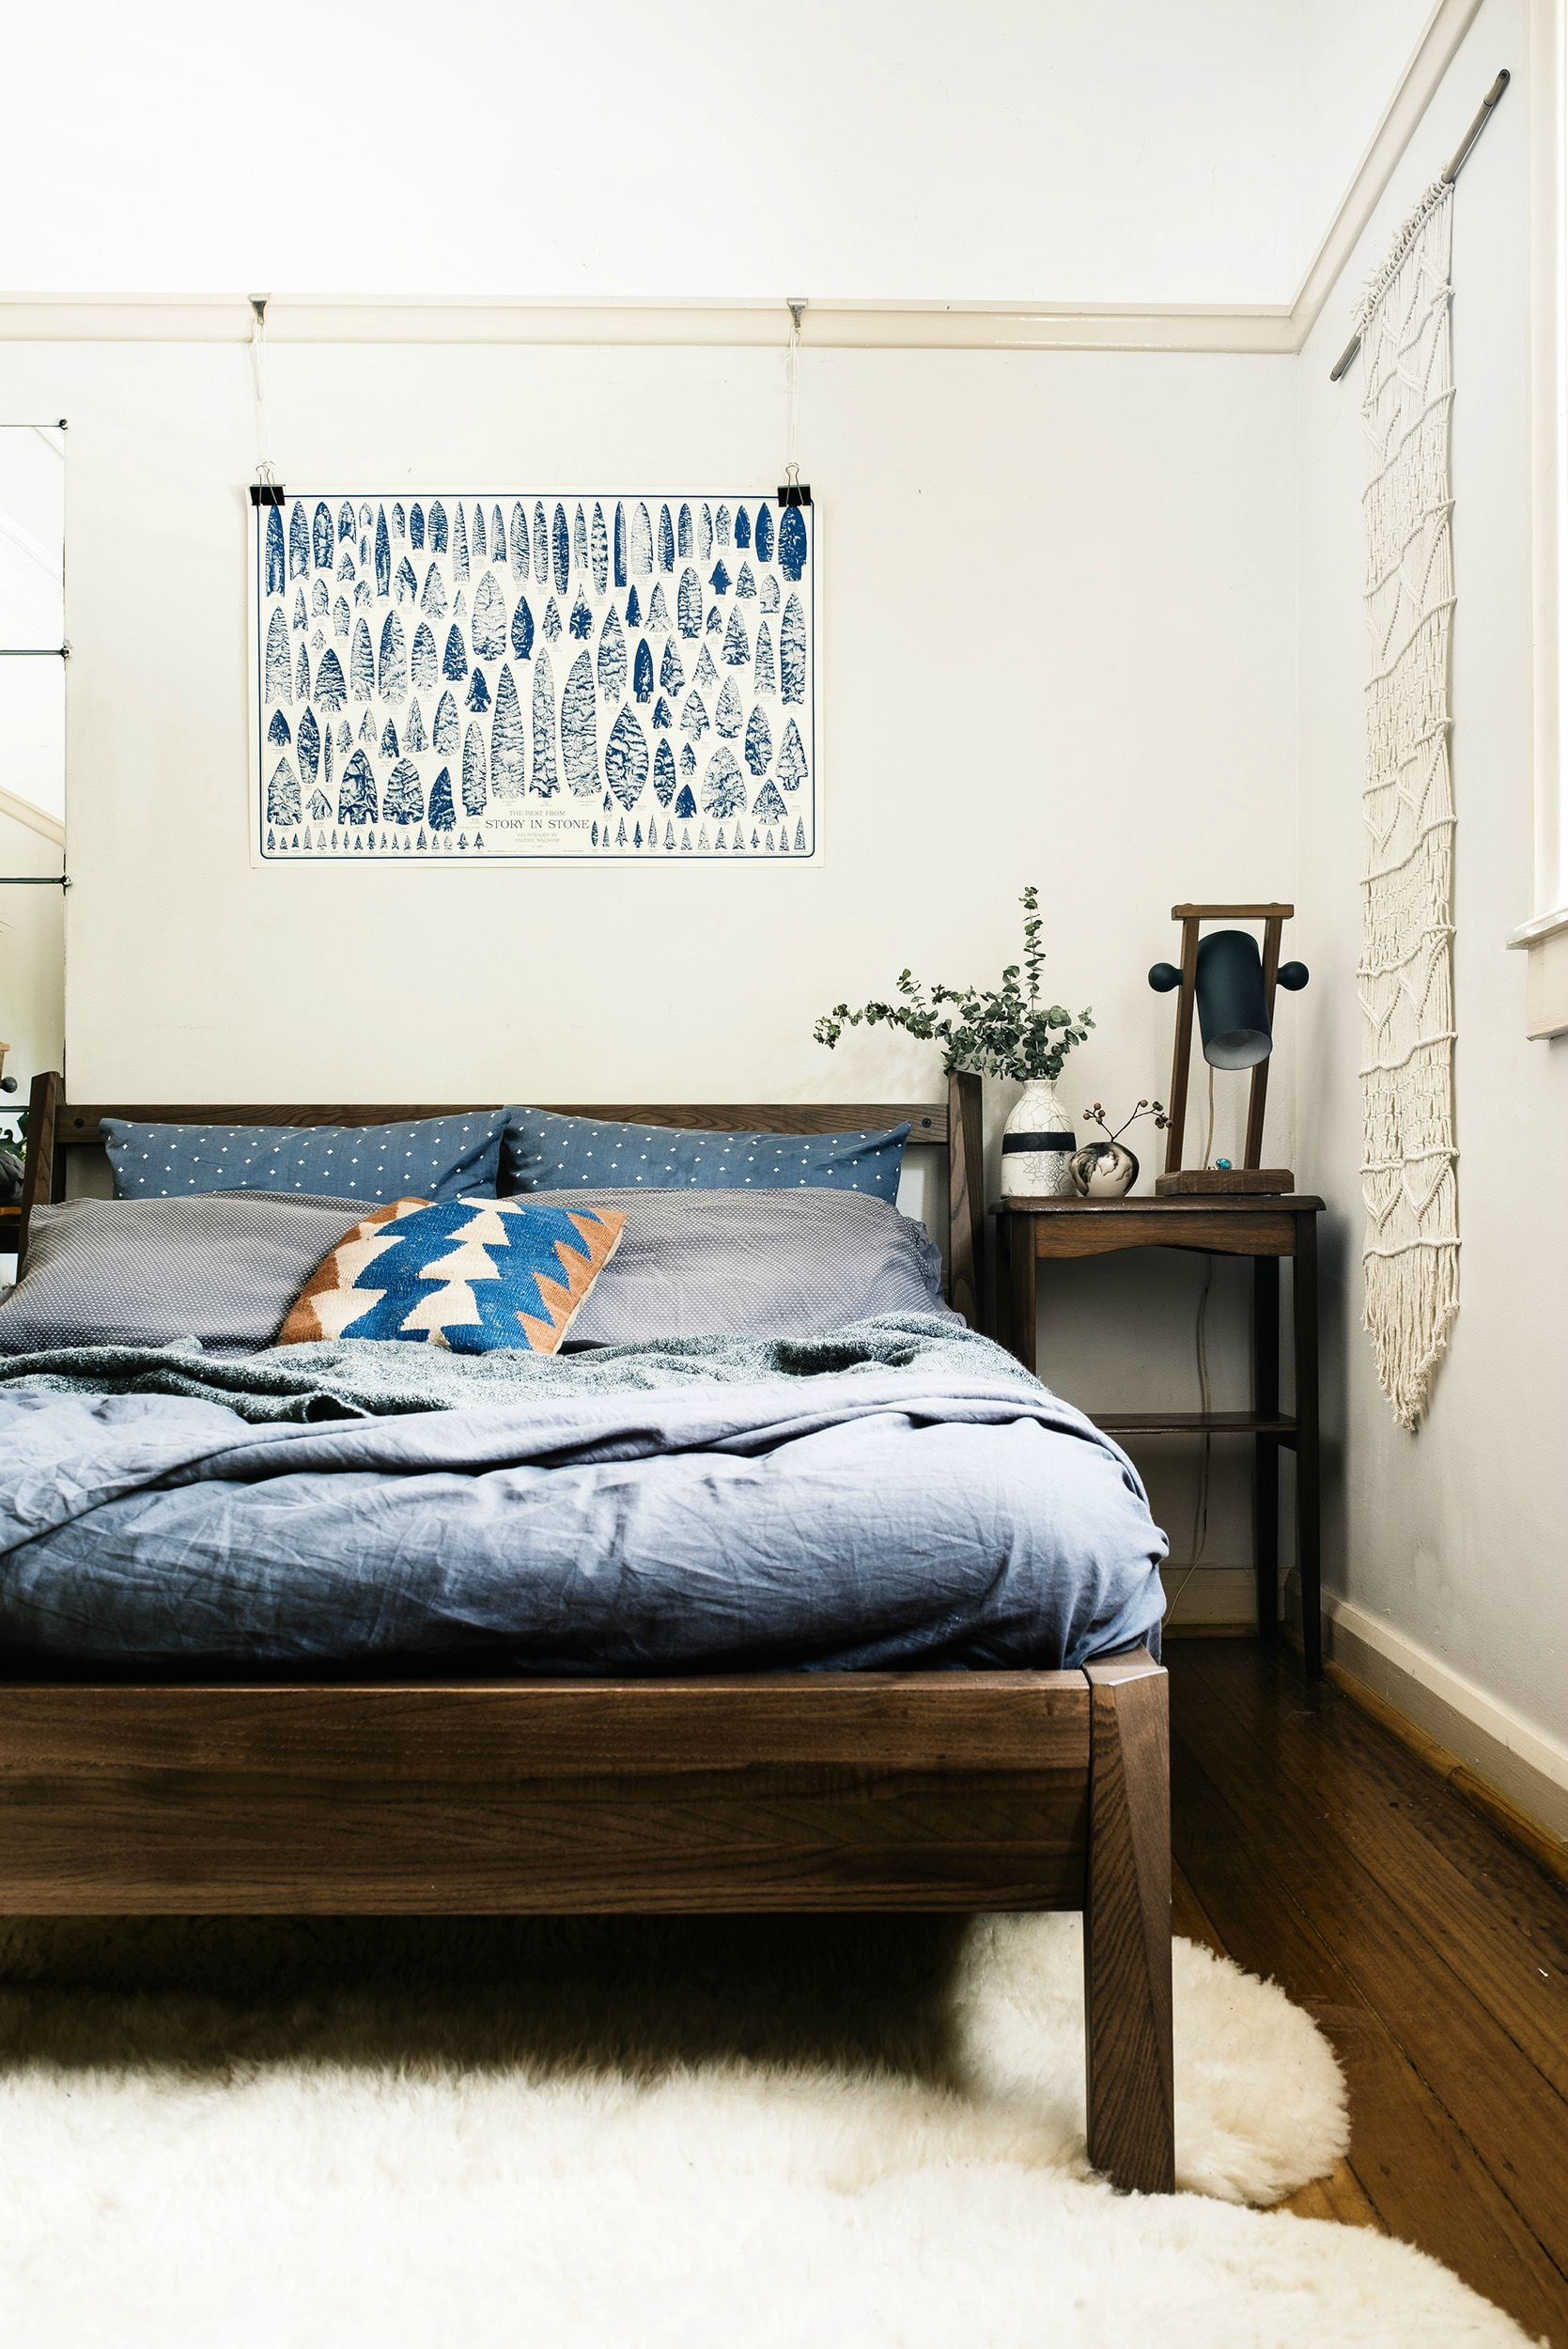 Incredibly This Gorgeous Wooden Bed Was An Affordable Ikea Find See Why Reddit Is Freaking